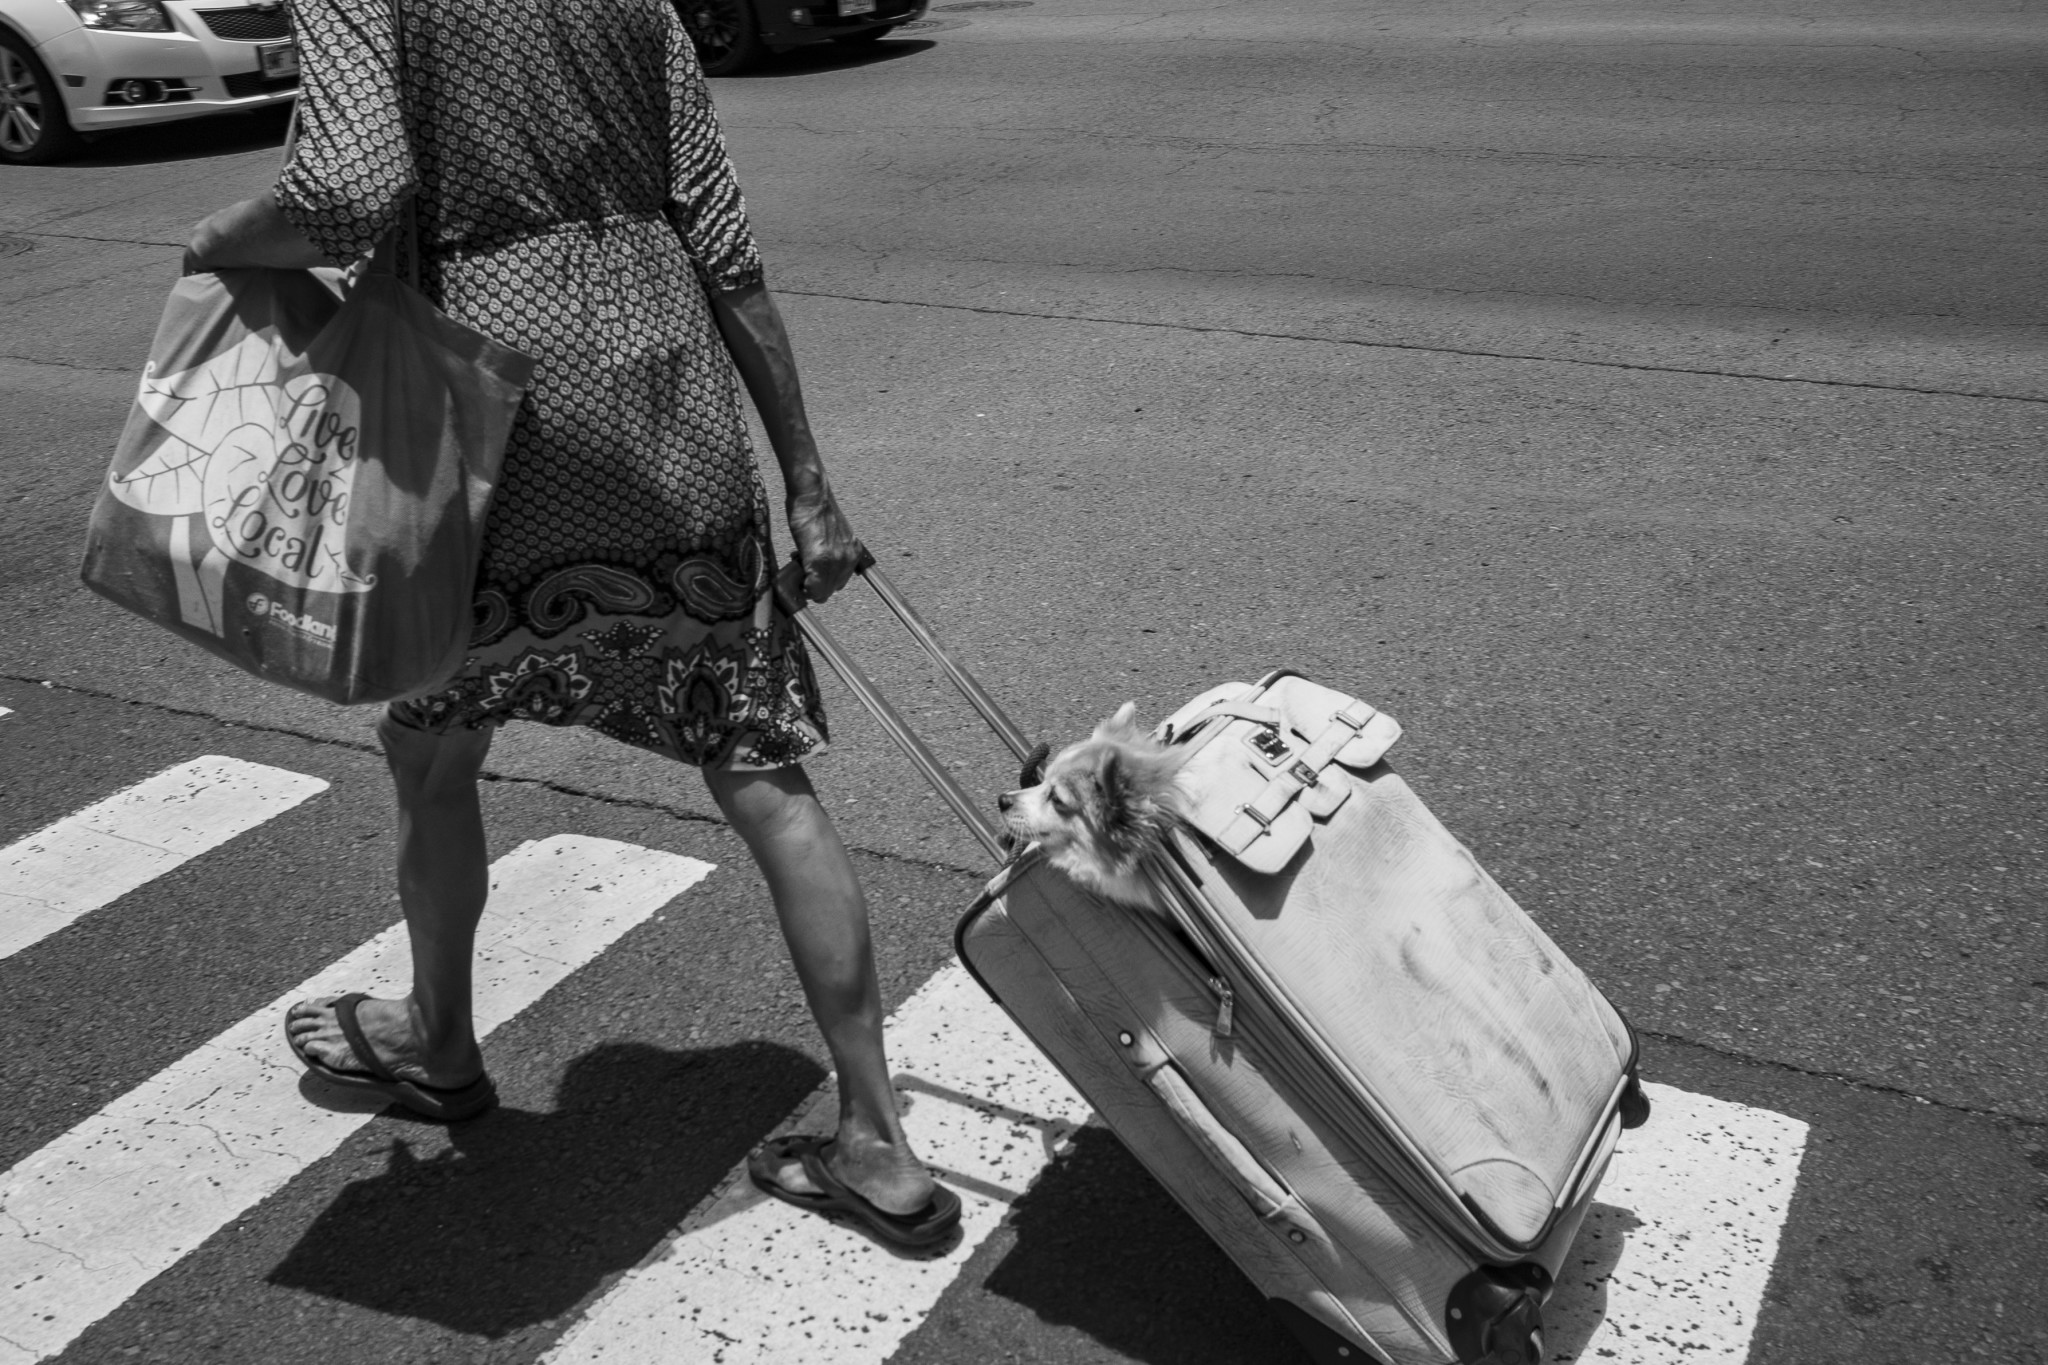 <p>It probably wasn't a stowaway, but this dog was getting a free ride courtesy of a woman intent on crossing the street with her baggage.</p>